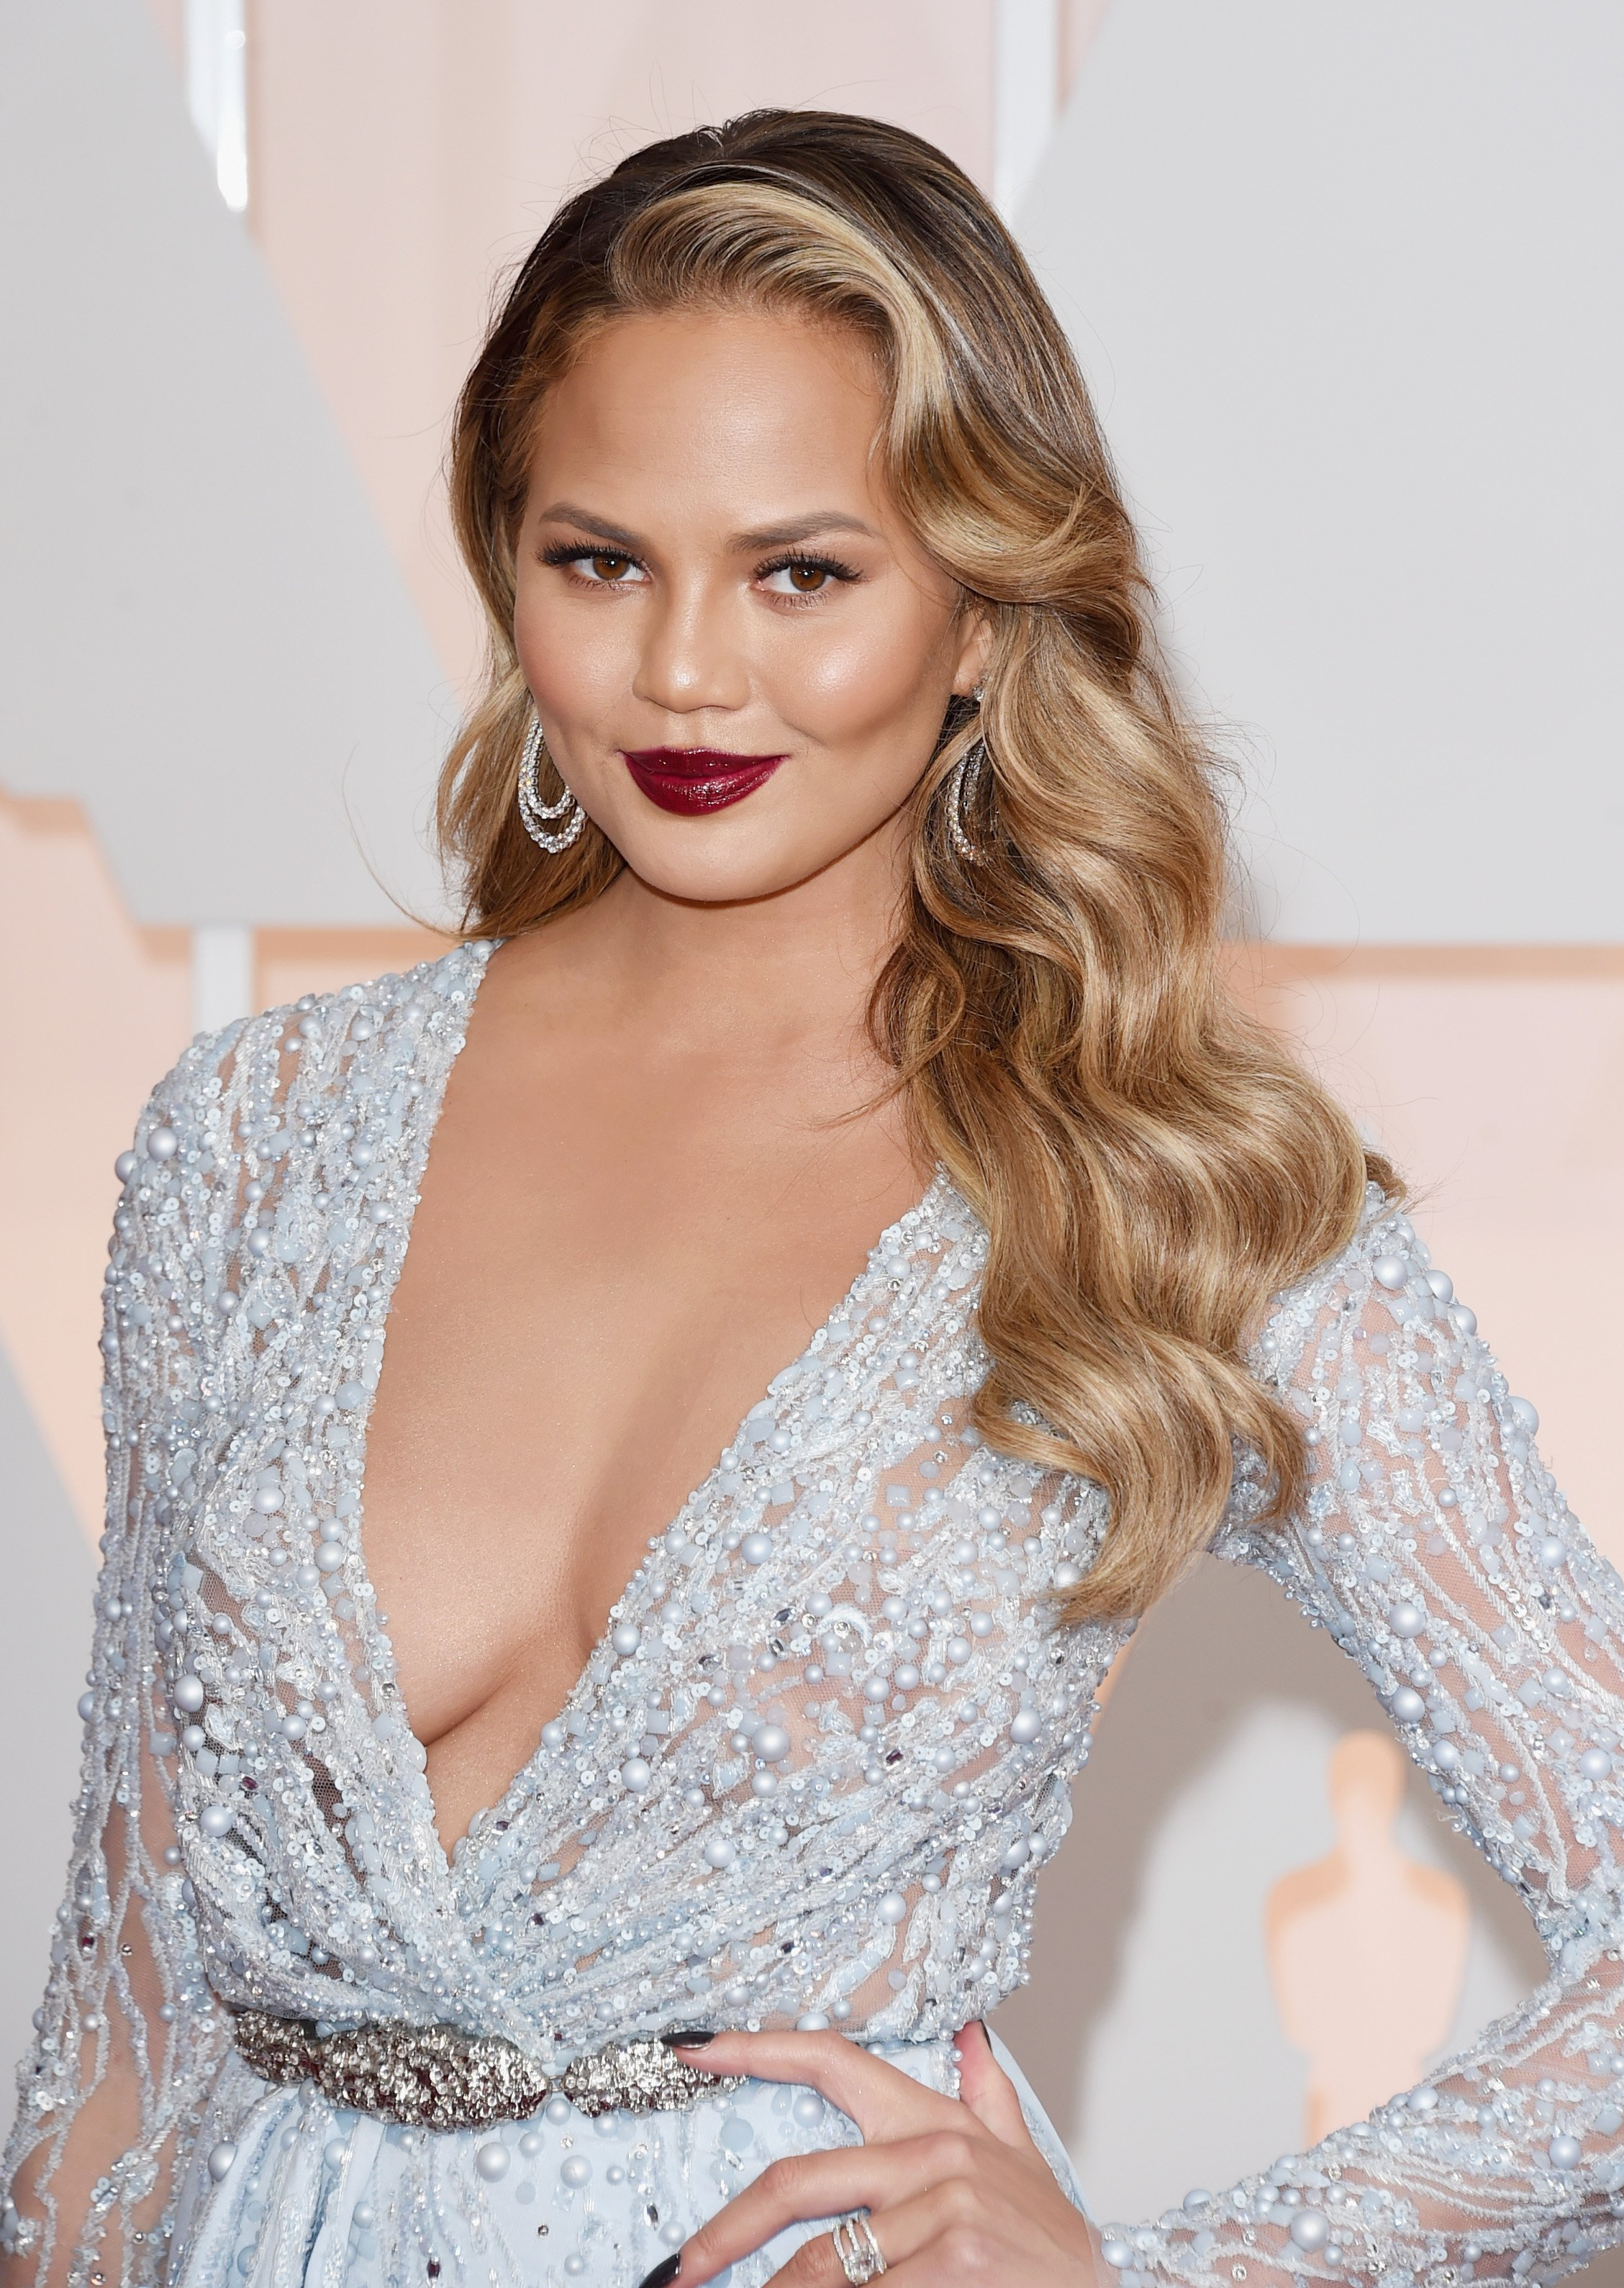 Model Chrissy Teigen at the 87th Annual Academy Awards at Hollywood & Highland Center on February 22, 2015 in Hollywood, California. |Source: Getty Images